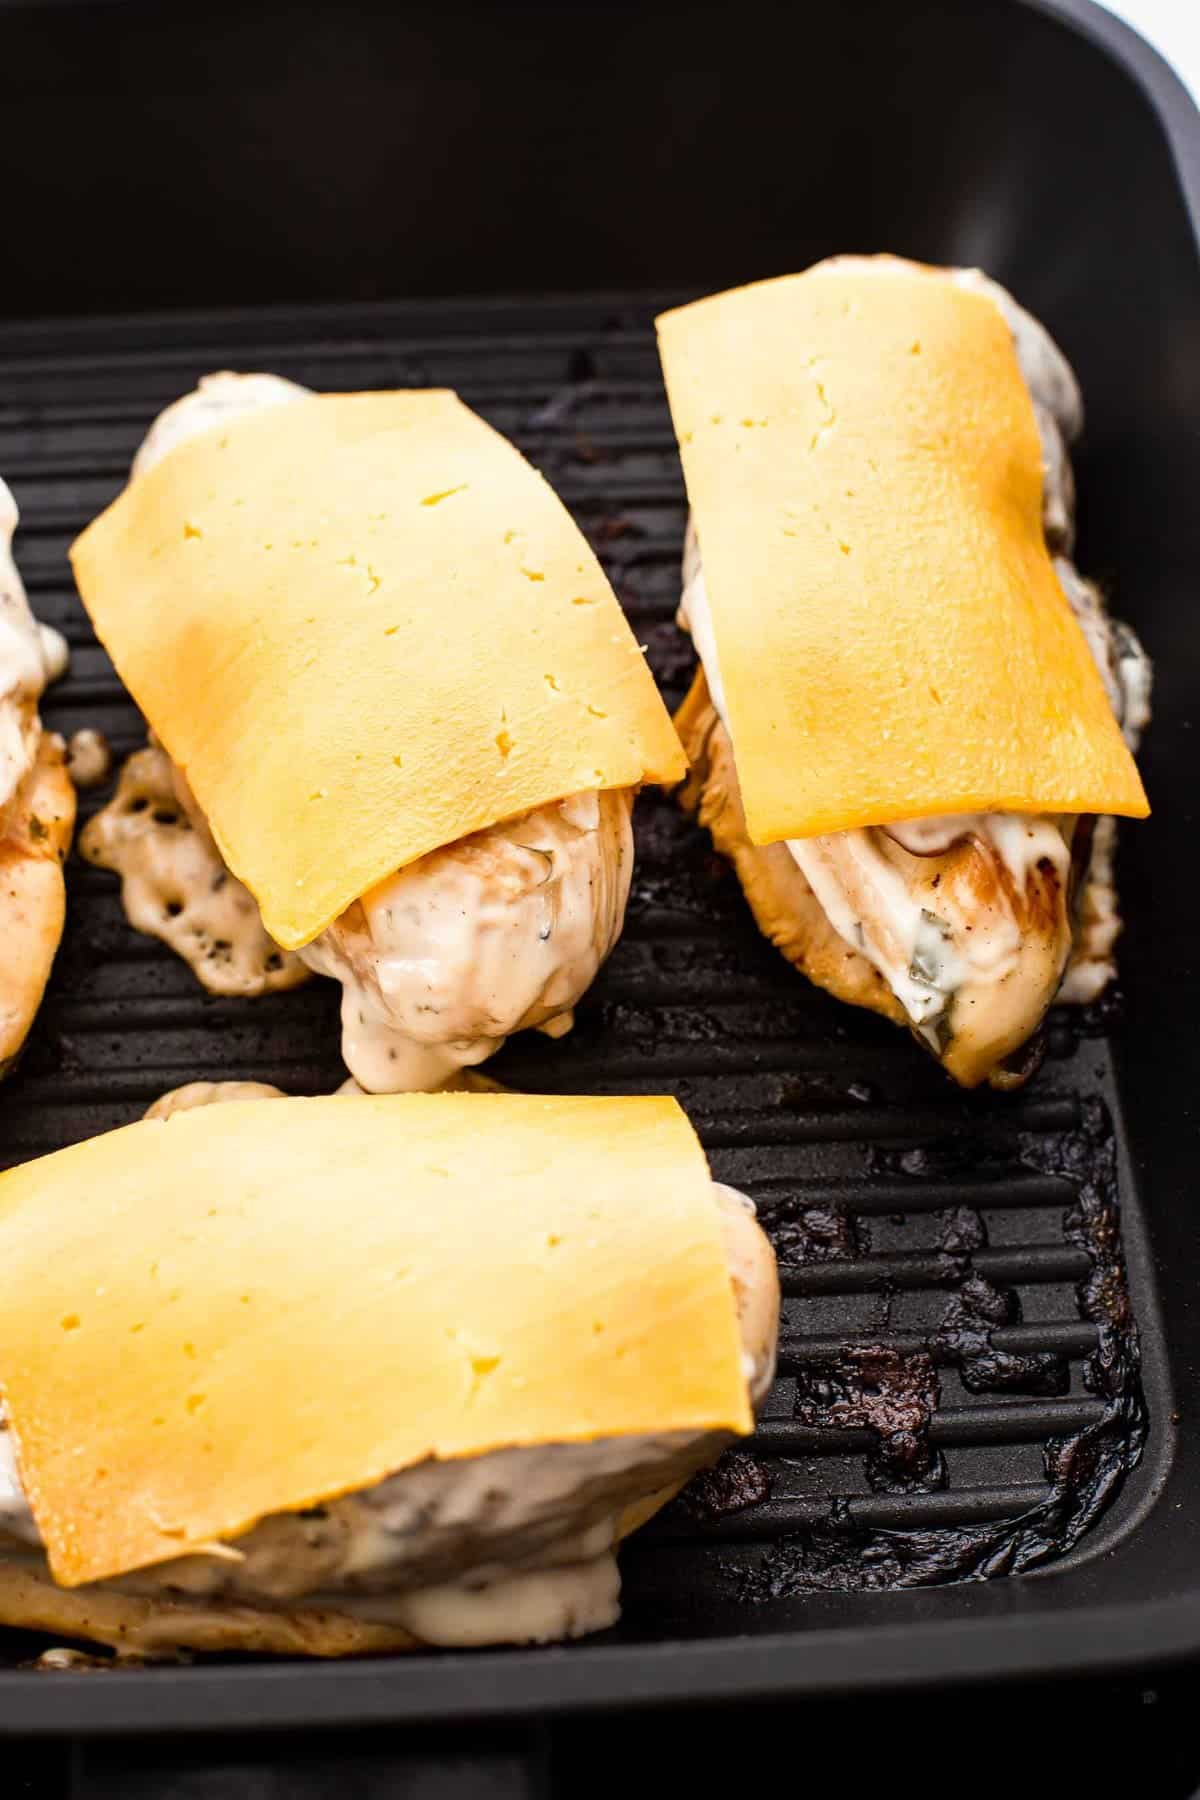 Cheese slices on chicken breasts in a pan